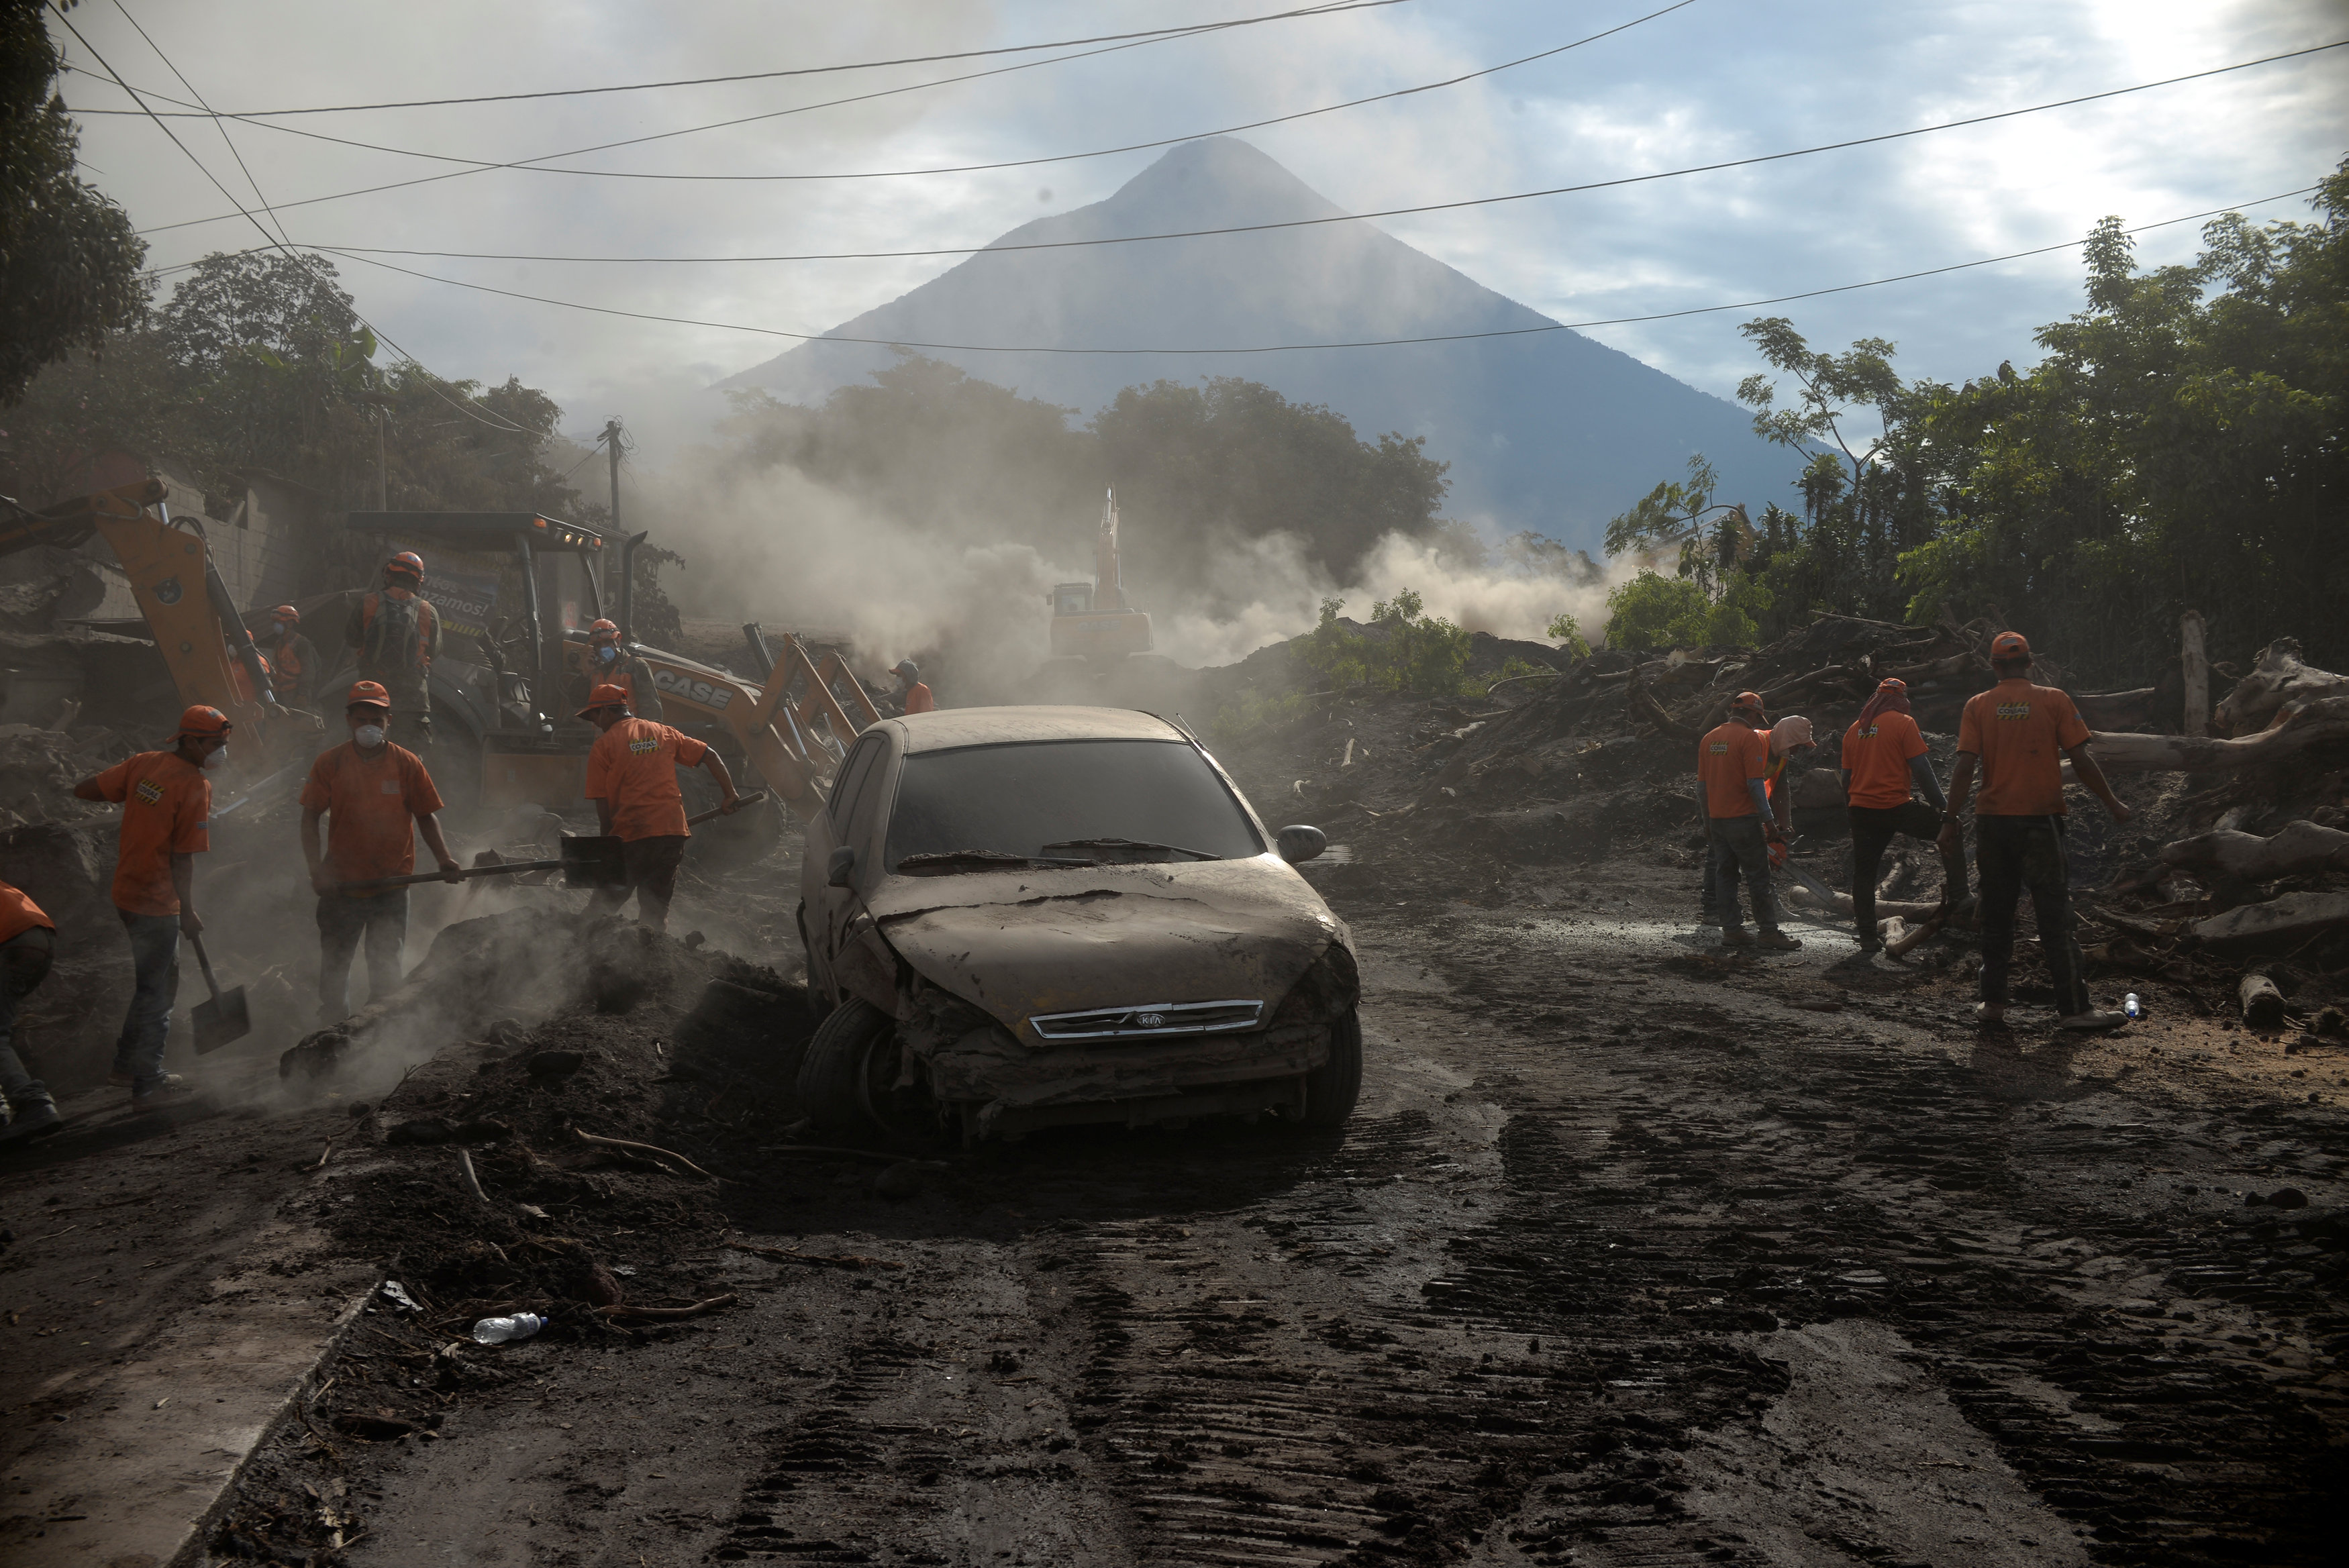 Workers remove ashes from a road at an area affected by the eruption of the Fuego volcano at El Rodeo in Escuintla, Guatemala June 6, 2018. REUTERS/Fabricio Alonzo